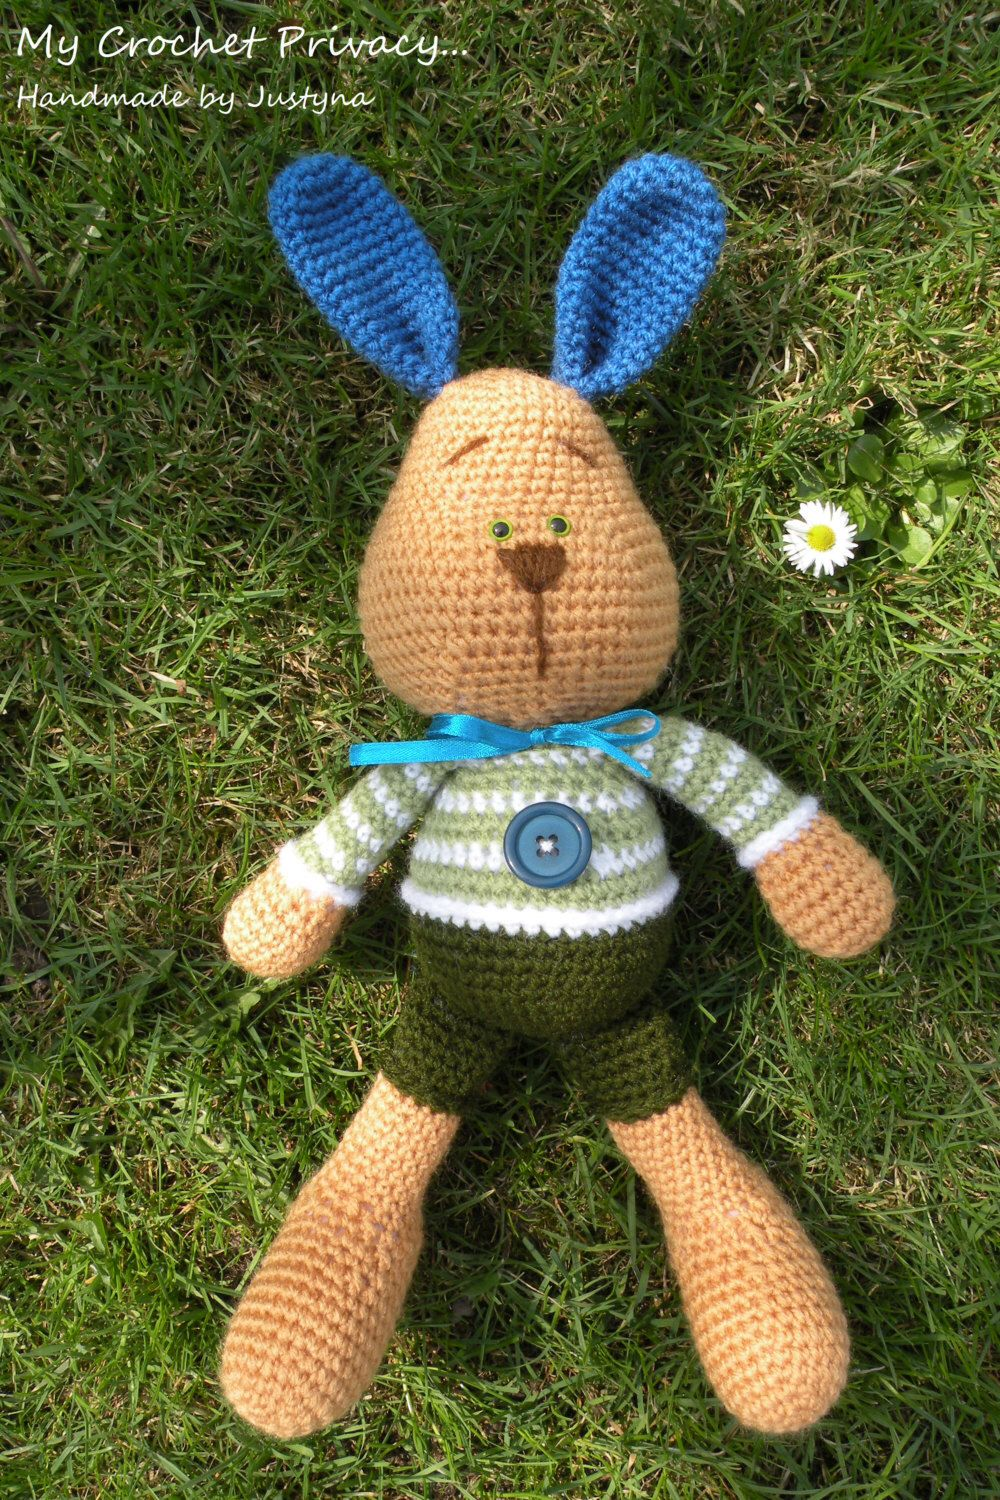 Crochet pattern - Farrel the Bunny by MyCrochetPrivacy on Etsy https://www.etsy.com/listing/155282213/crochet-pattern-farrel-the-bunny